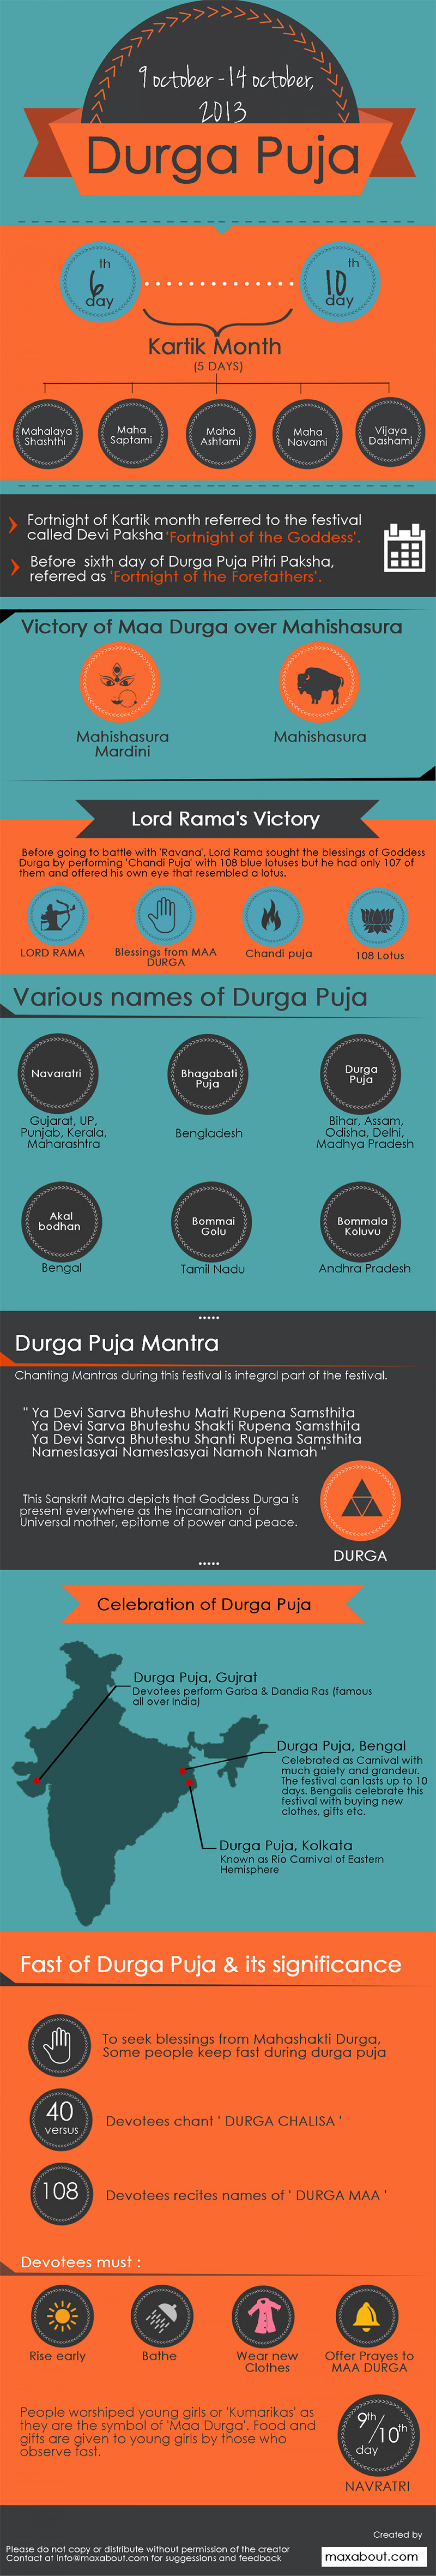 Interesting Facts About Durga Puja Infographic